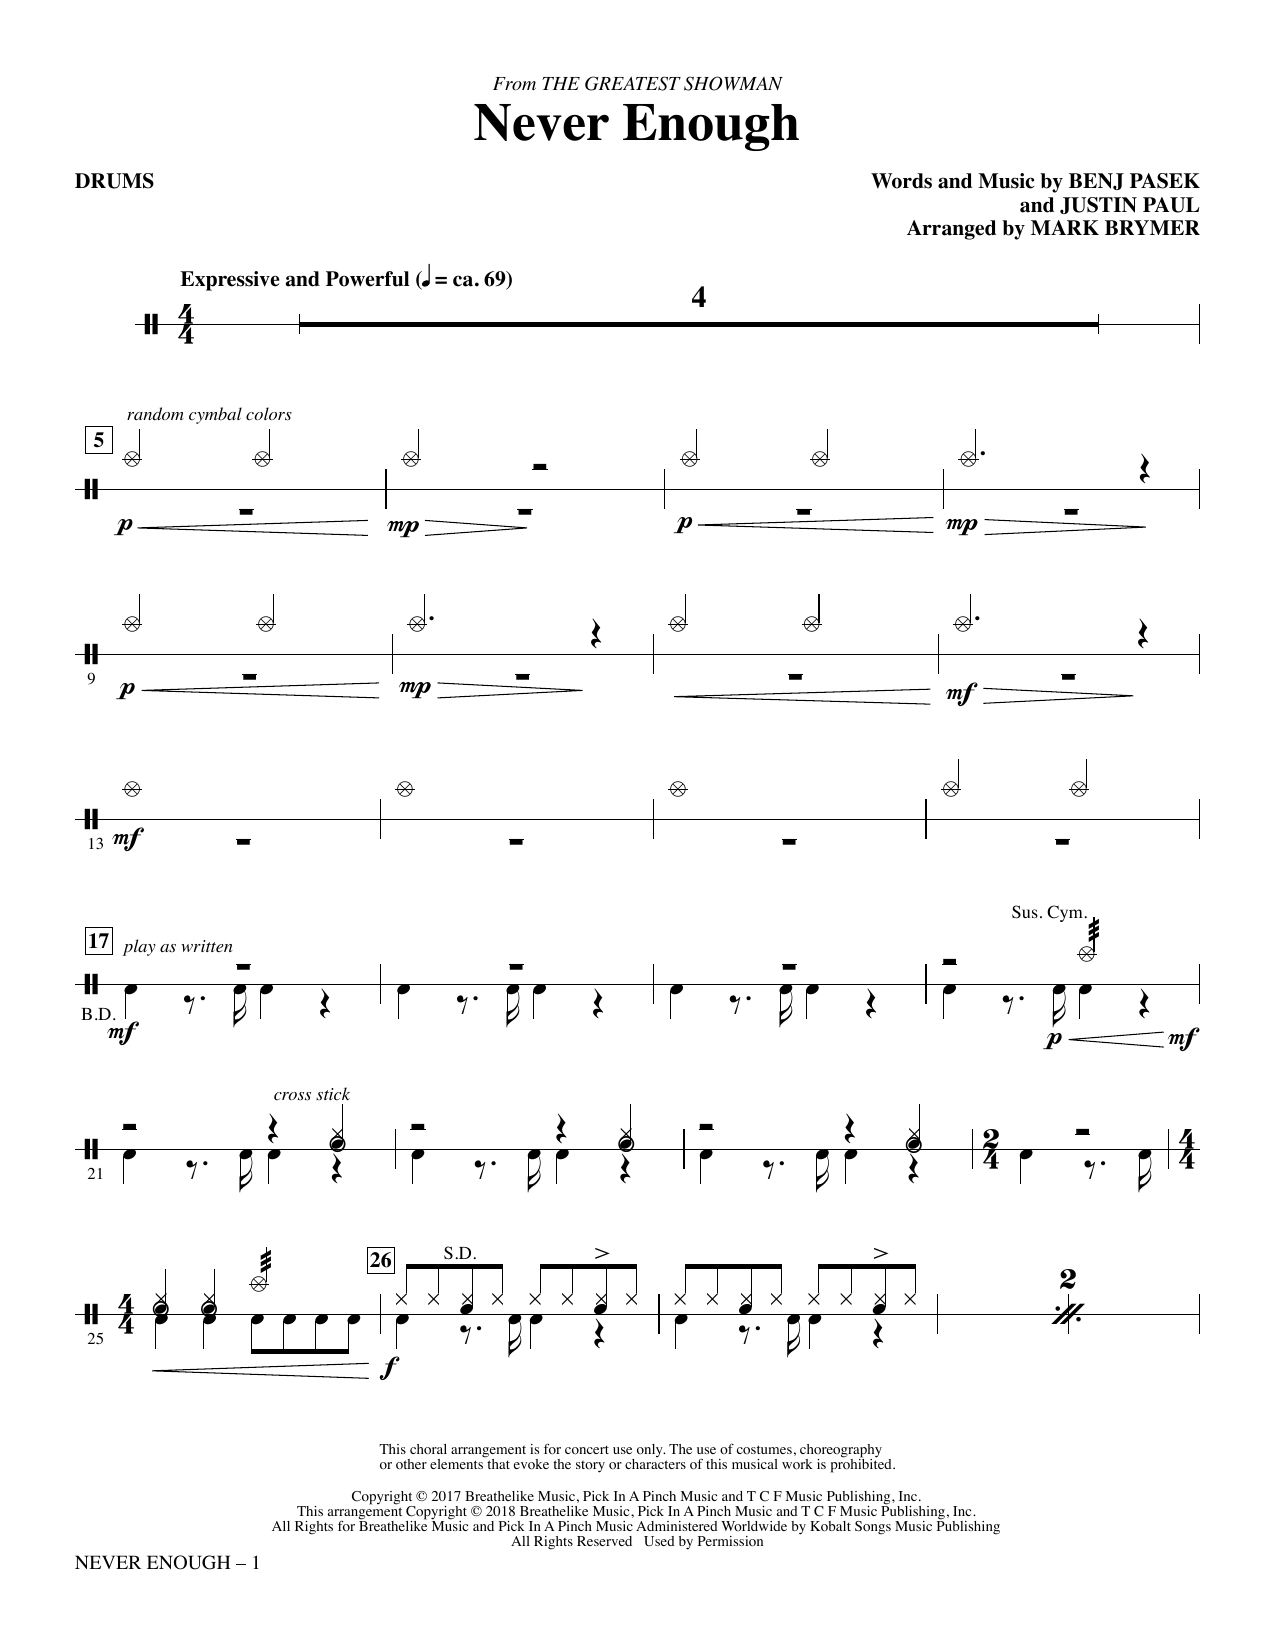 The greatest showman never enough piano sheet music free pdf